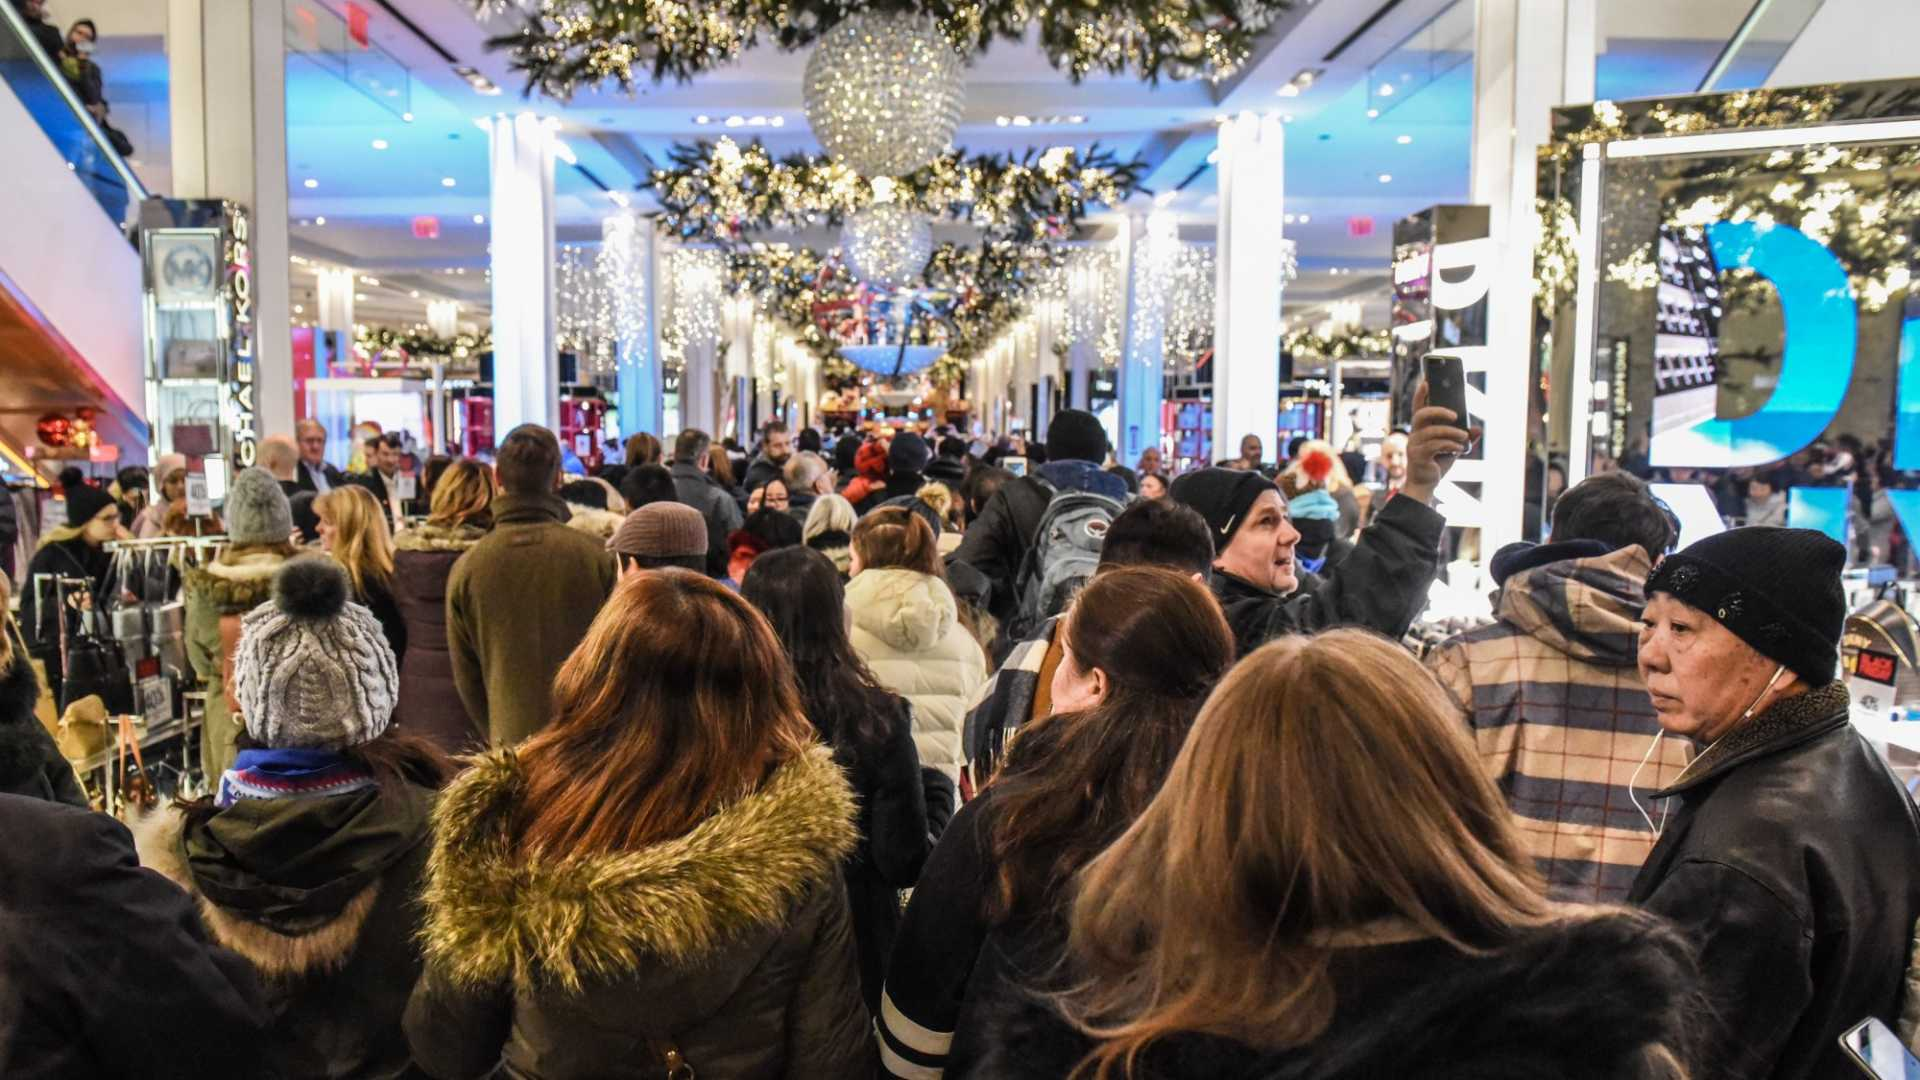 More Than $8 Billion in Cyber Monday Sales Broke Records. But Here's What Still Drives Customers Into Retail Stores This Holiday Shopping Season